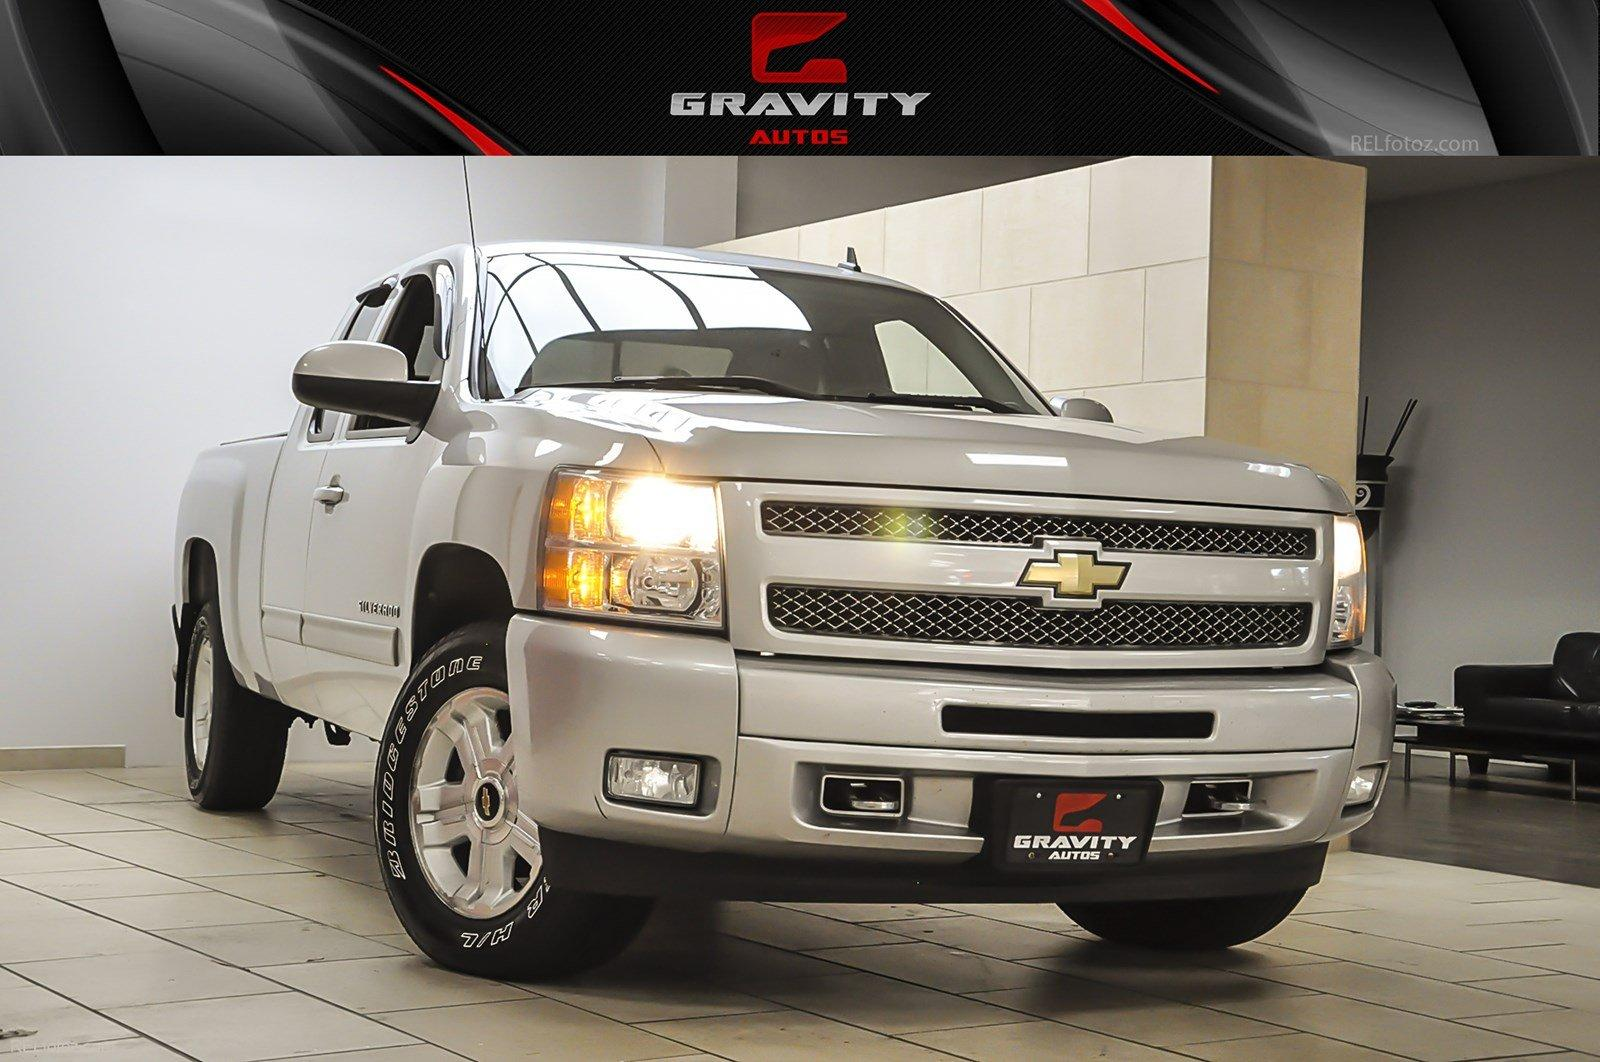 spaced stockers chevrolet outside black oem aggressive suspension wheel offset fender gallery country silverado rough out lift